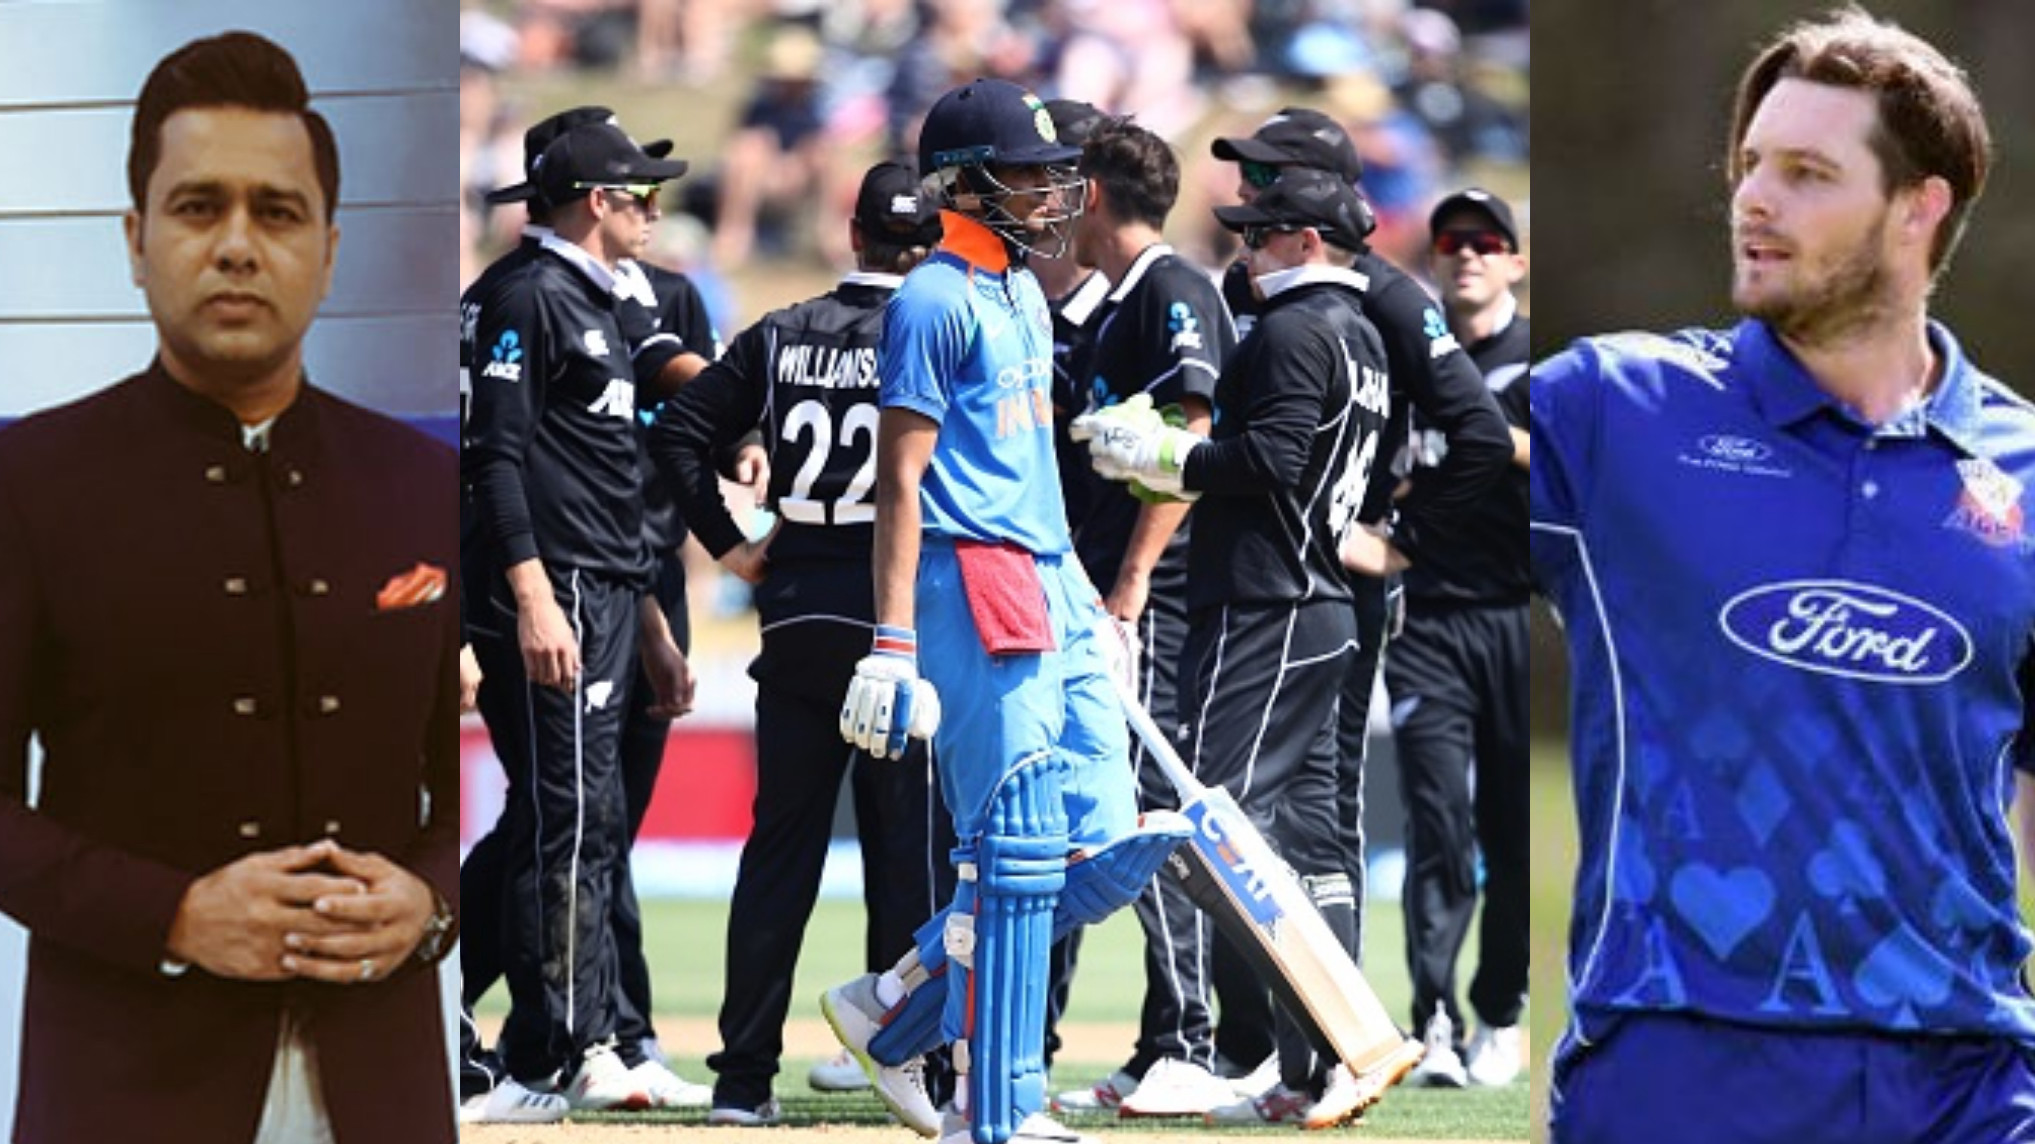 NZ v IND 2019: Cricket fraternity reacts to India's humiliating defeat in 4th ODI; praises Boult for his fifer